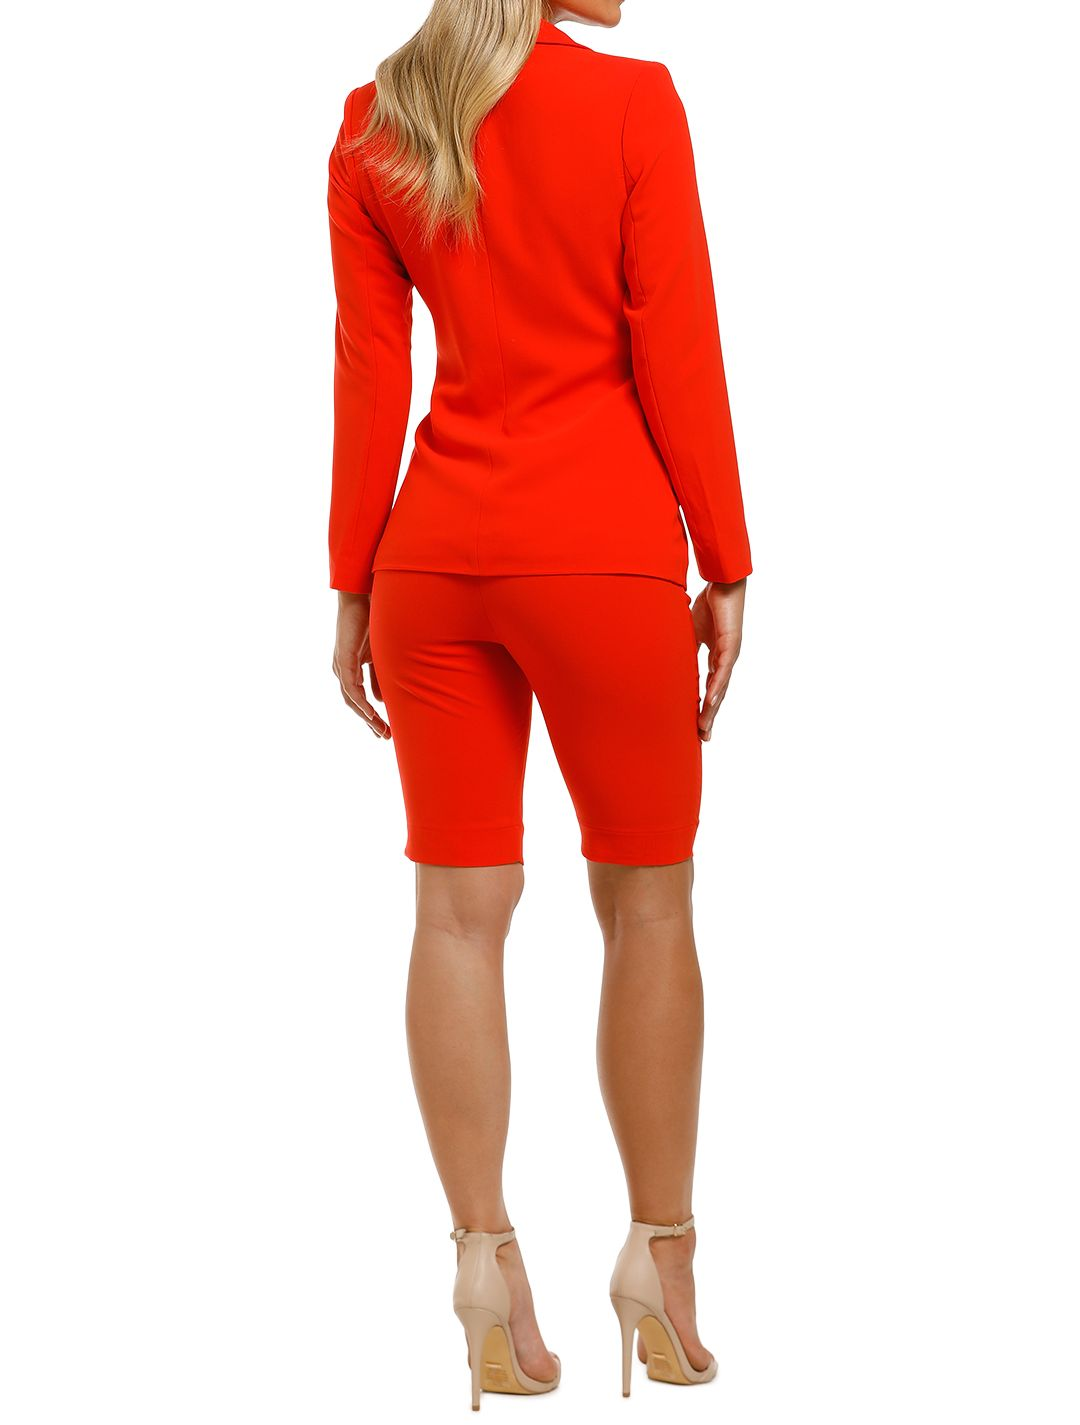 Ministry-of-Style-Magnolia-Blazer-and-Shorts-Set-Coral-Back